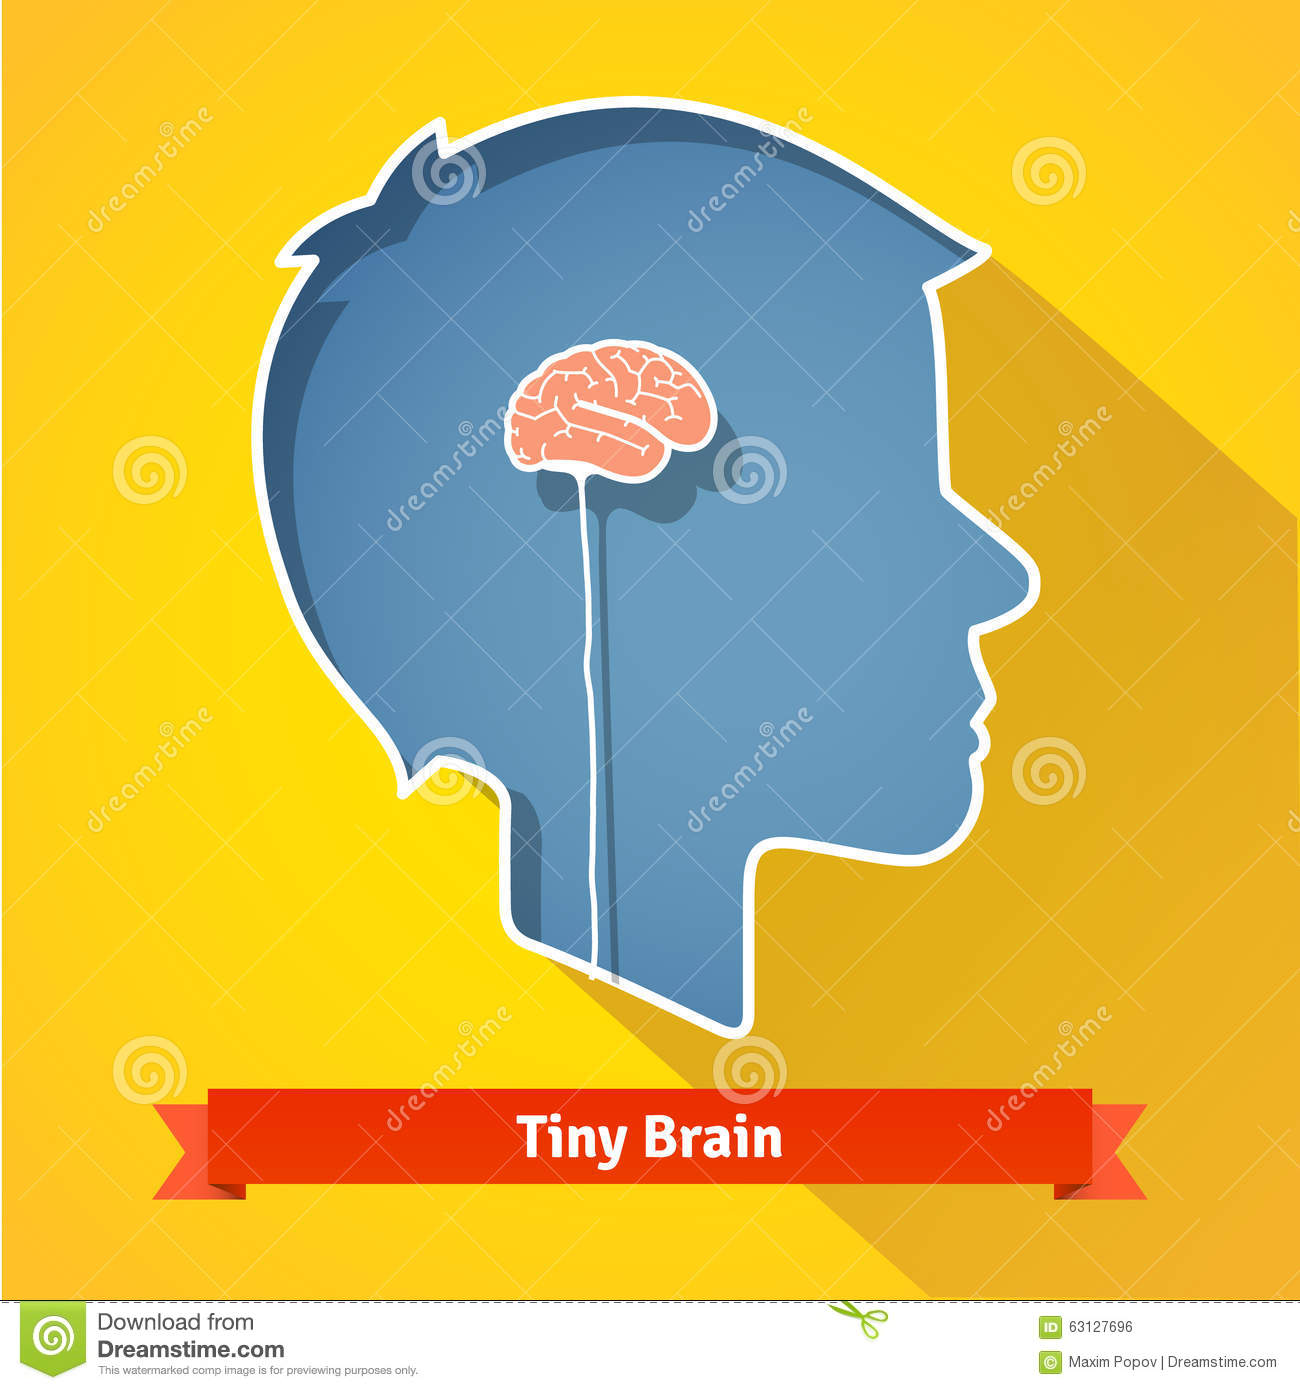 Tiny small underdeveloped or dried up brain